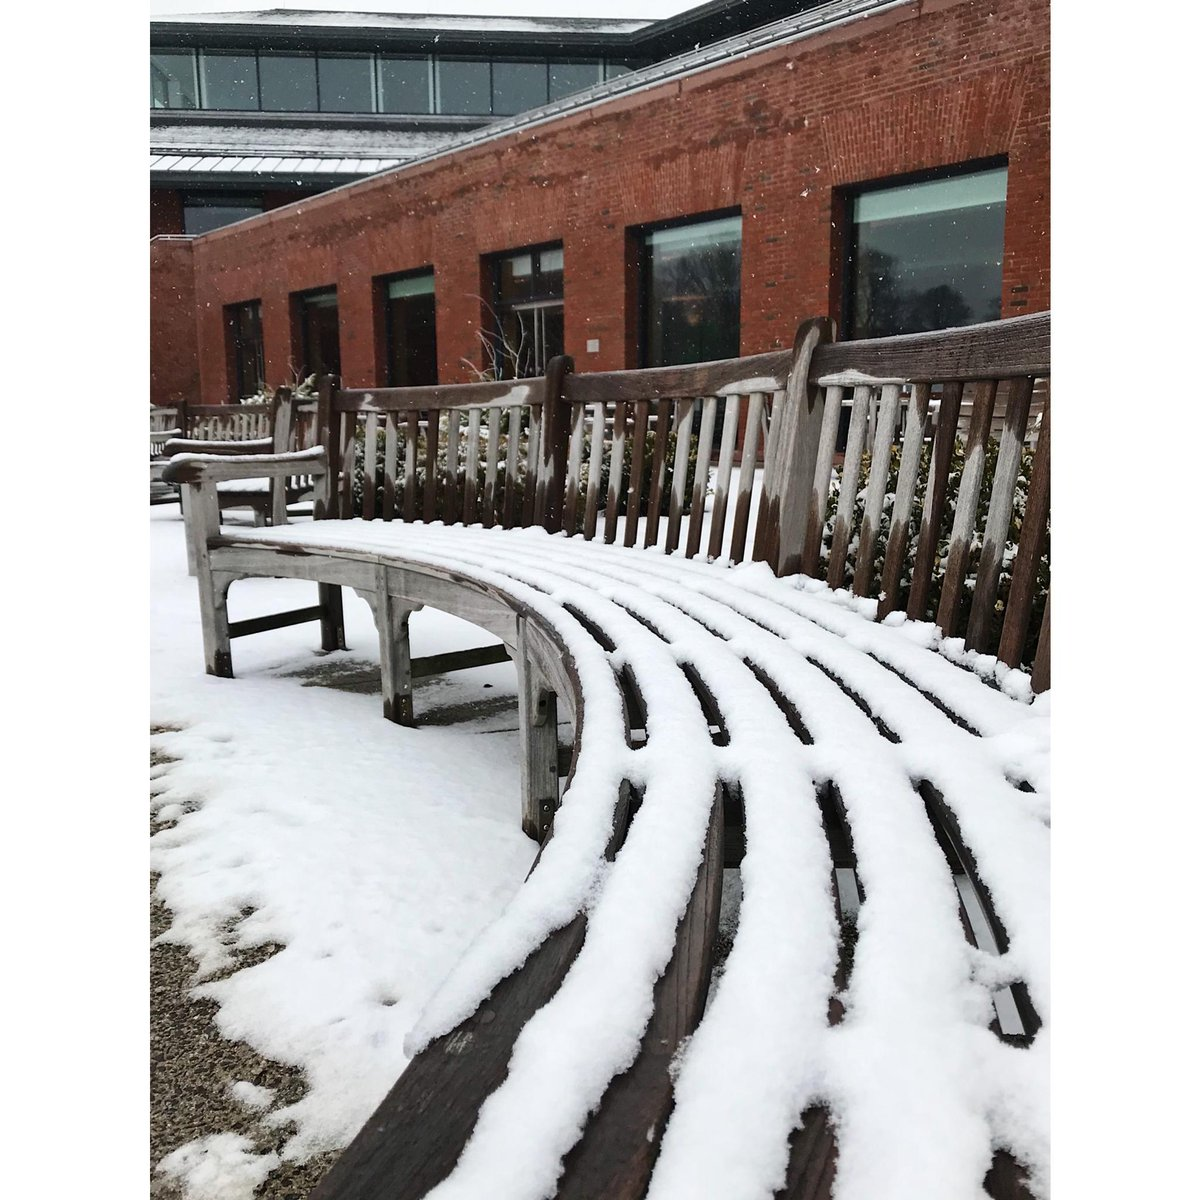 test Twitter Media - Snowy day at Wesleyan! Stay cozy, Cardinals! ❄️☃️☕ https://t.co/fXBKREMy8t